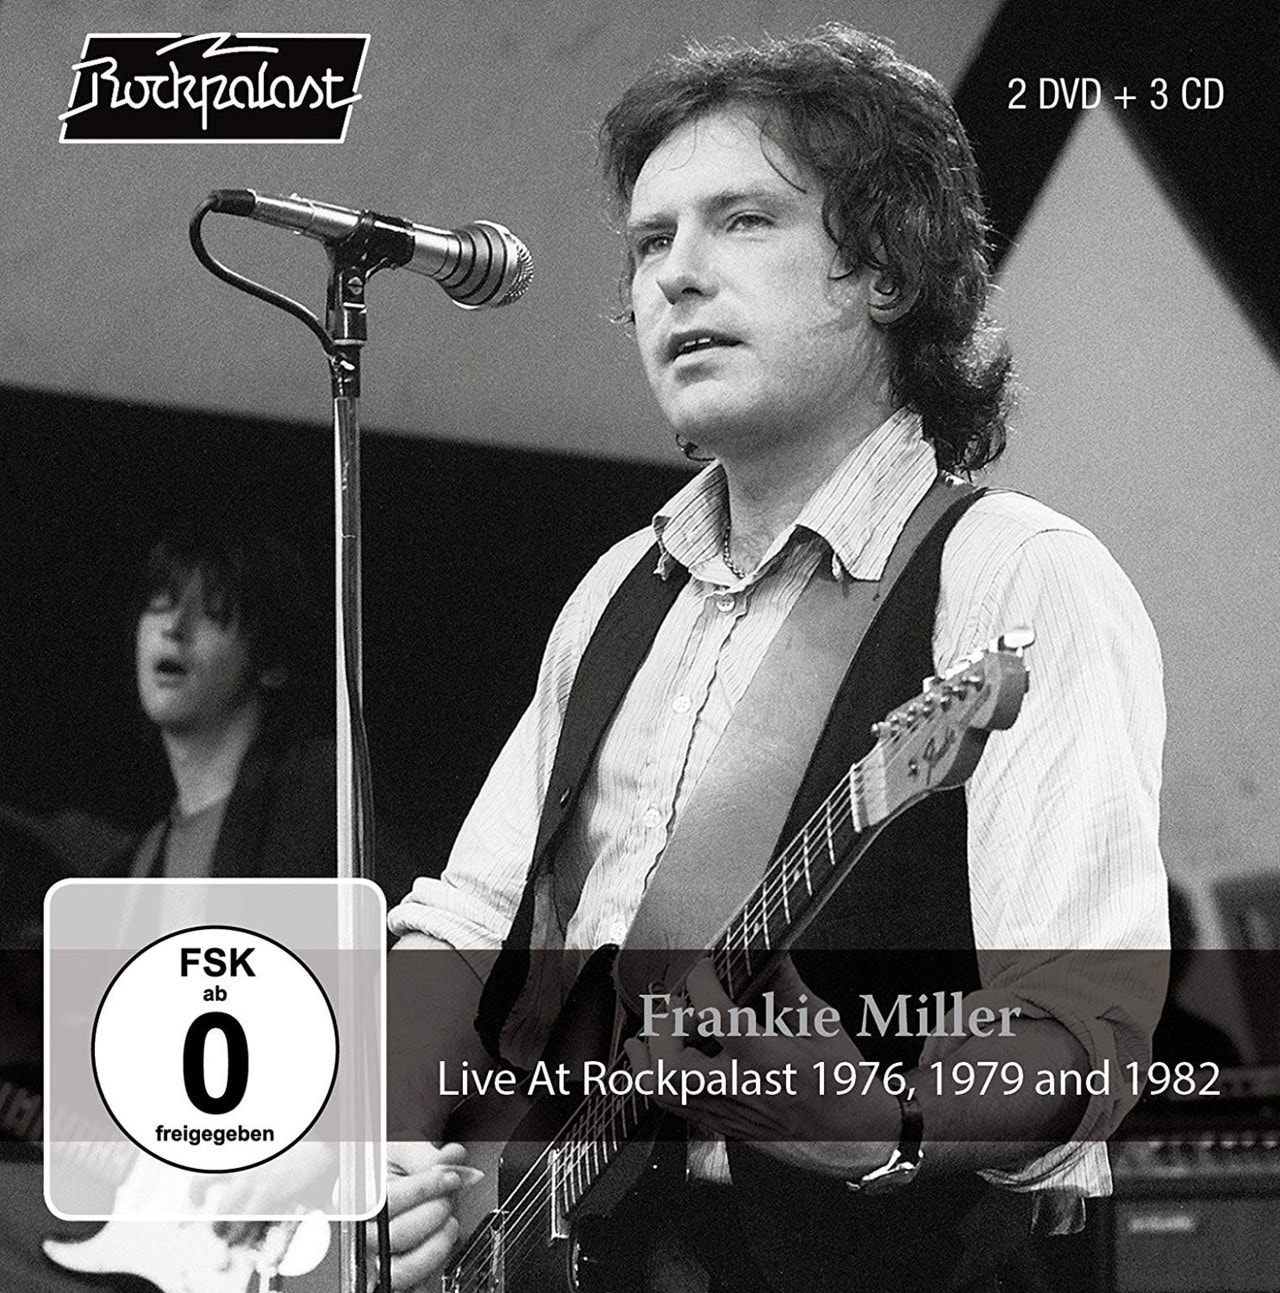 Live at Rockpalast 1976, 1979 and 1982 - 1